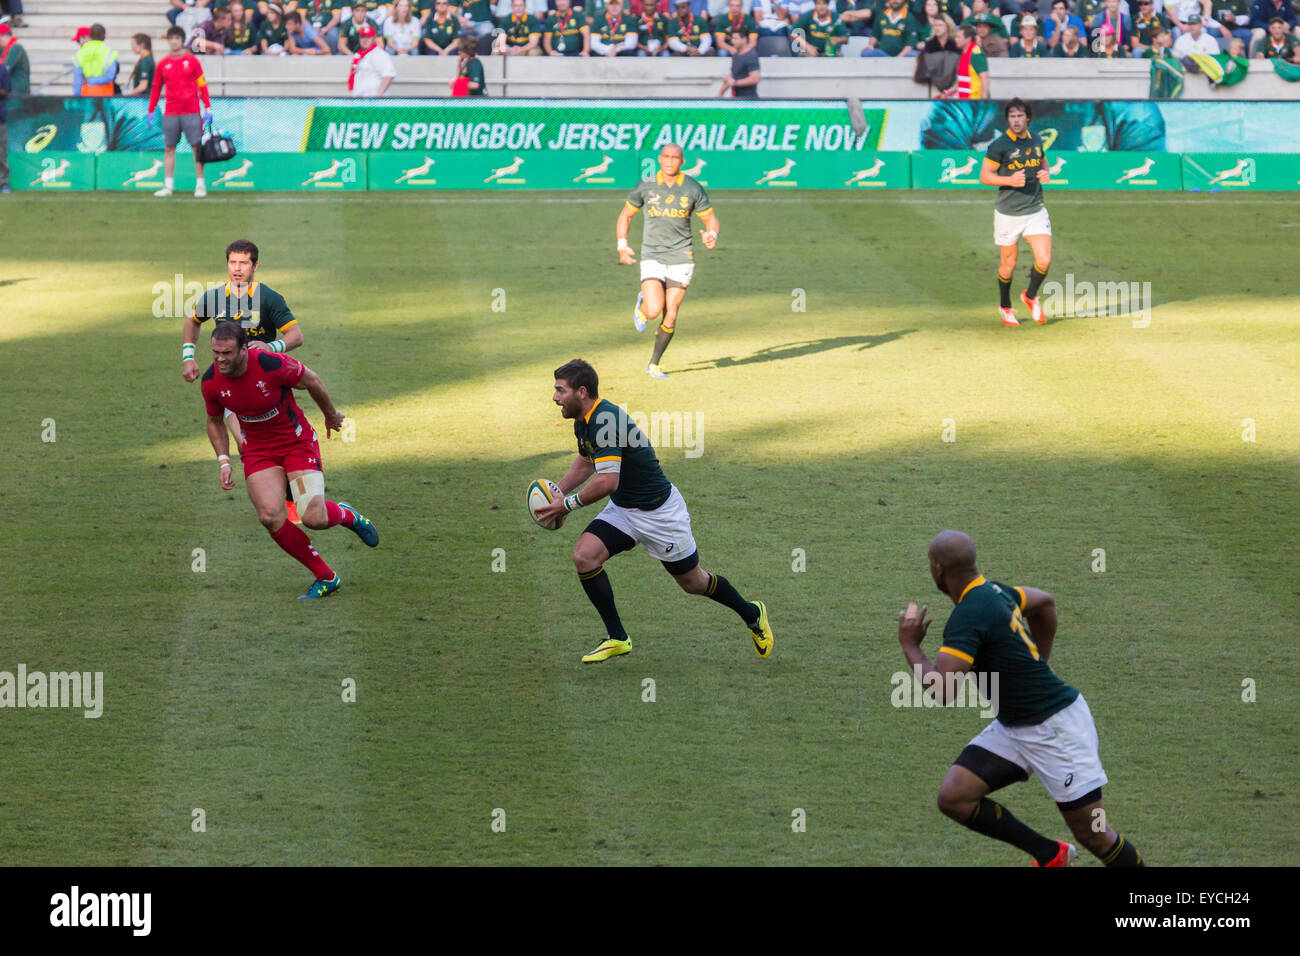 Willie le Roux of South Africa with the ball  during the 2nd test match between South Africa and Wales - Stock Image